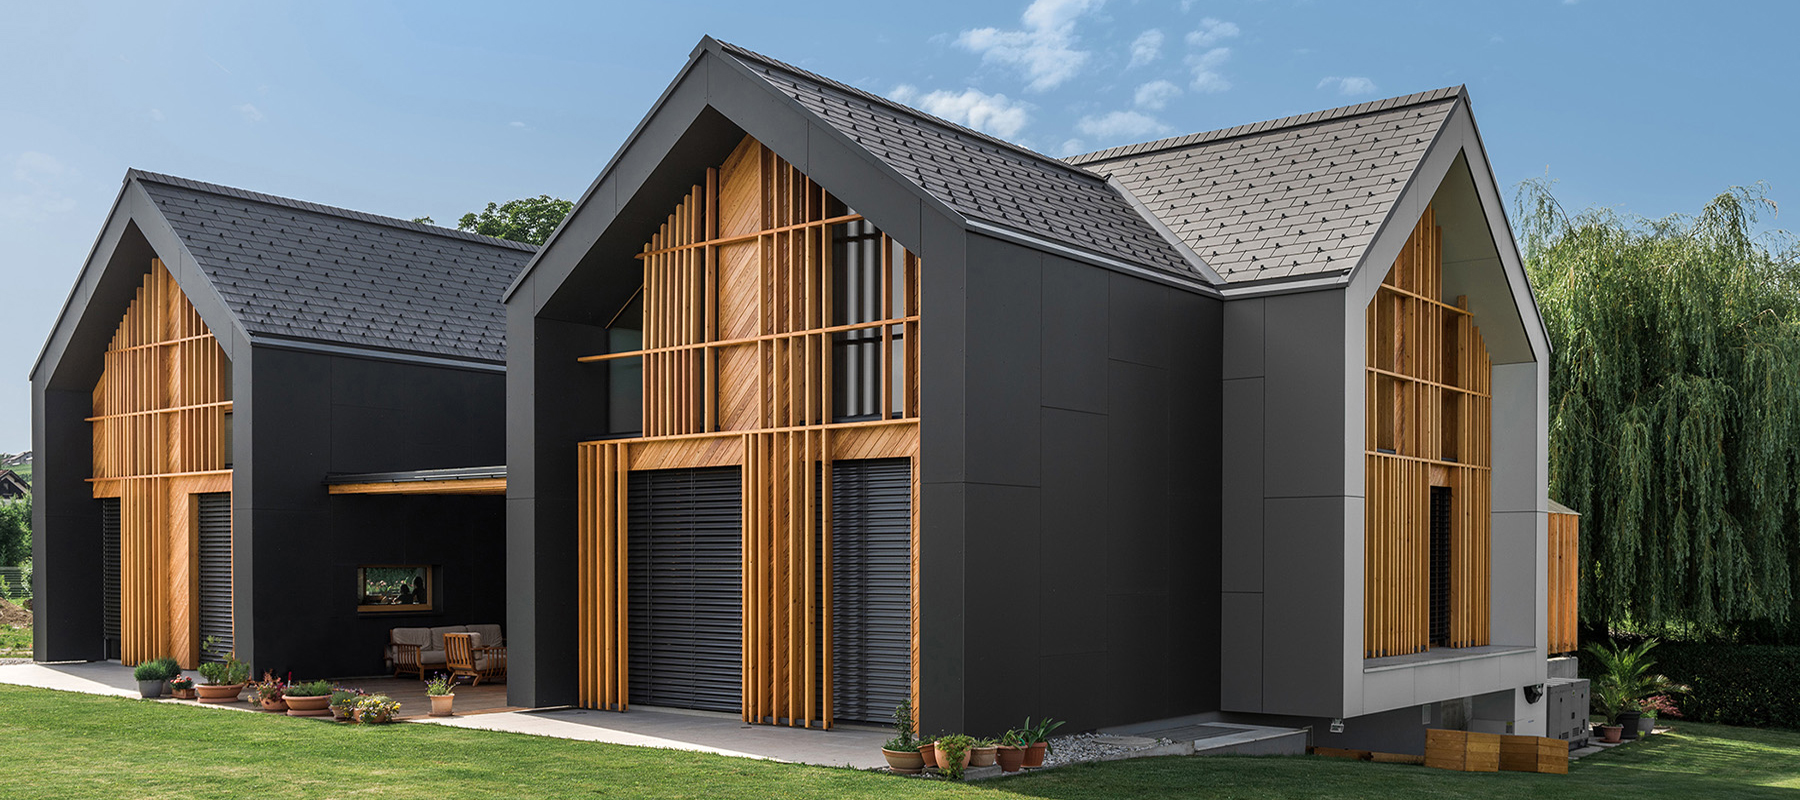 All black house design of three gabled volumes digsdigs House deaigns